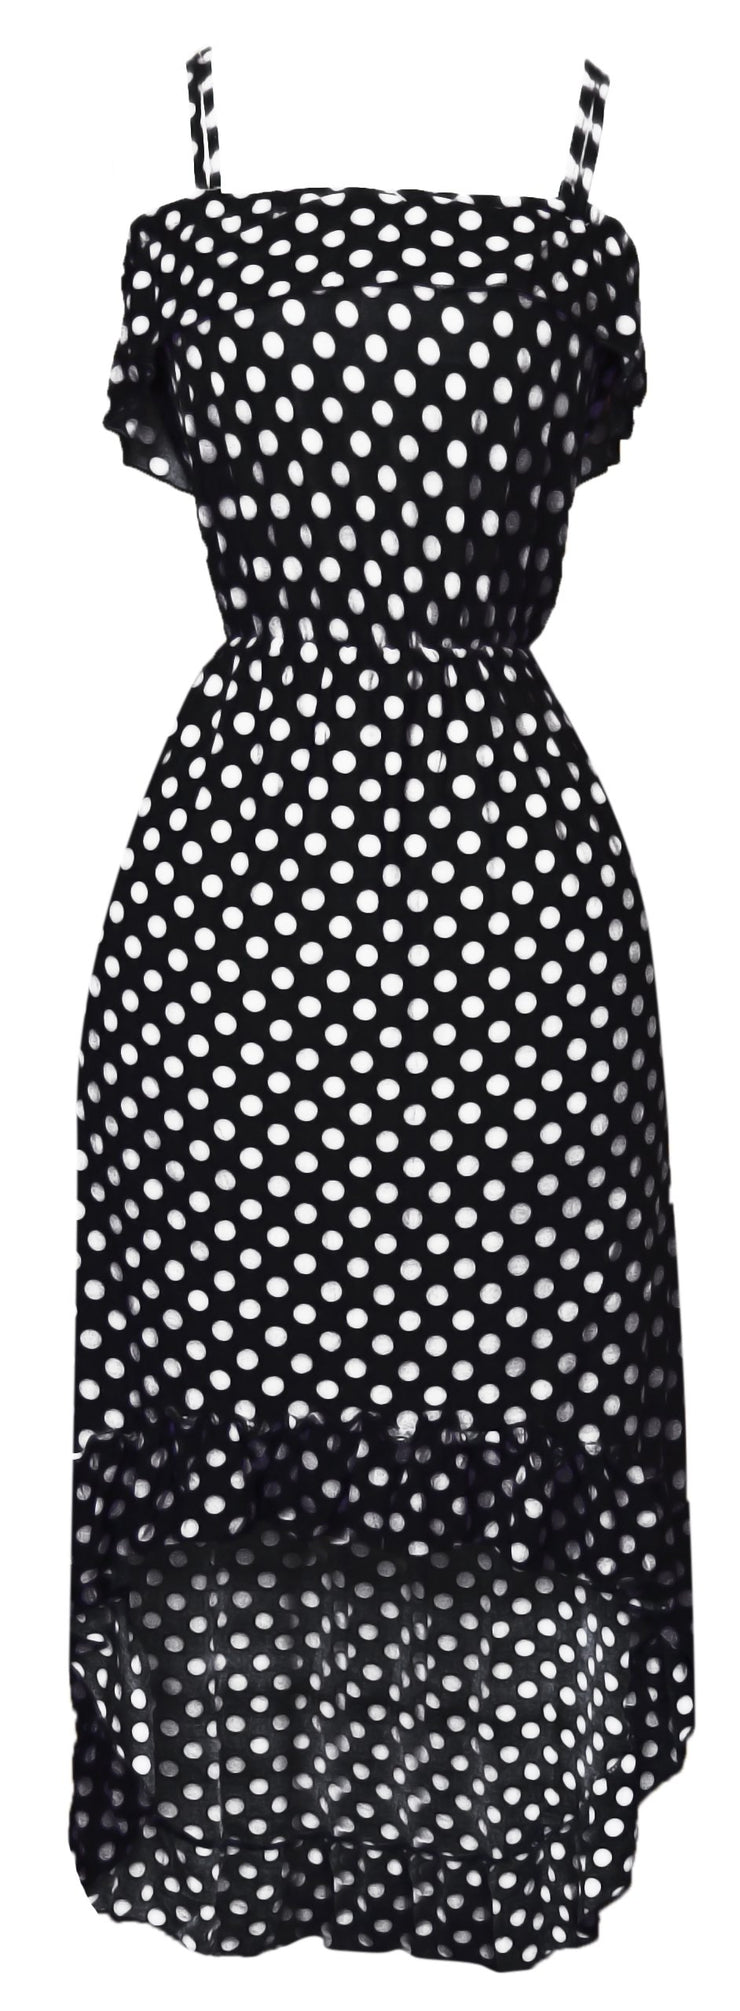 A1291-PolkaDot-Maxi-Dress-Blk-Whit-S-SM